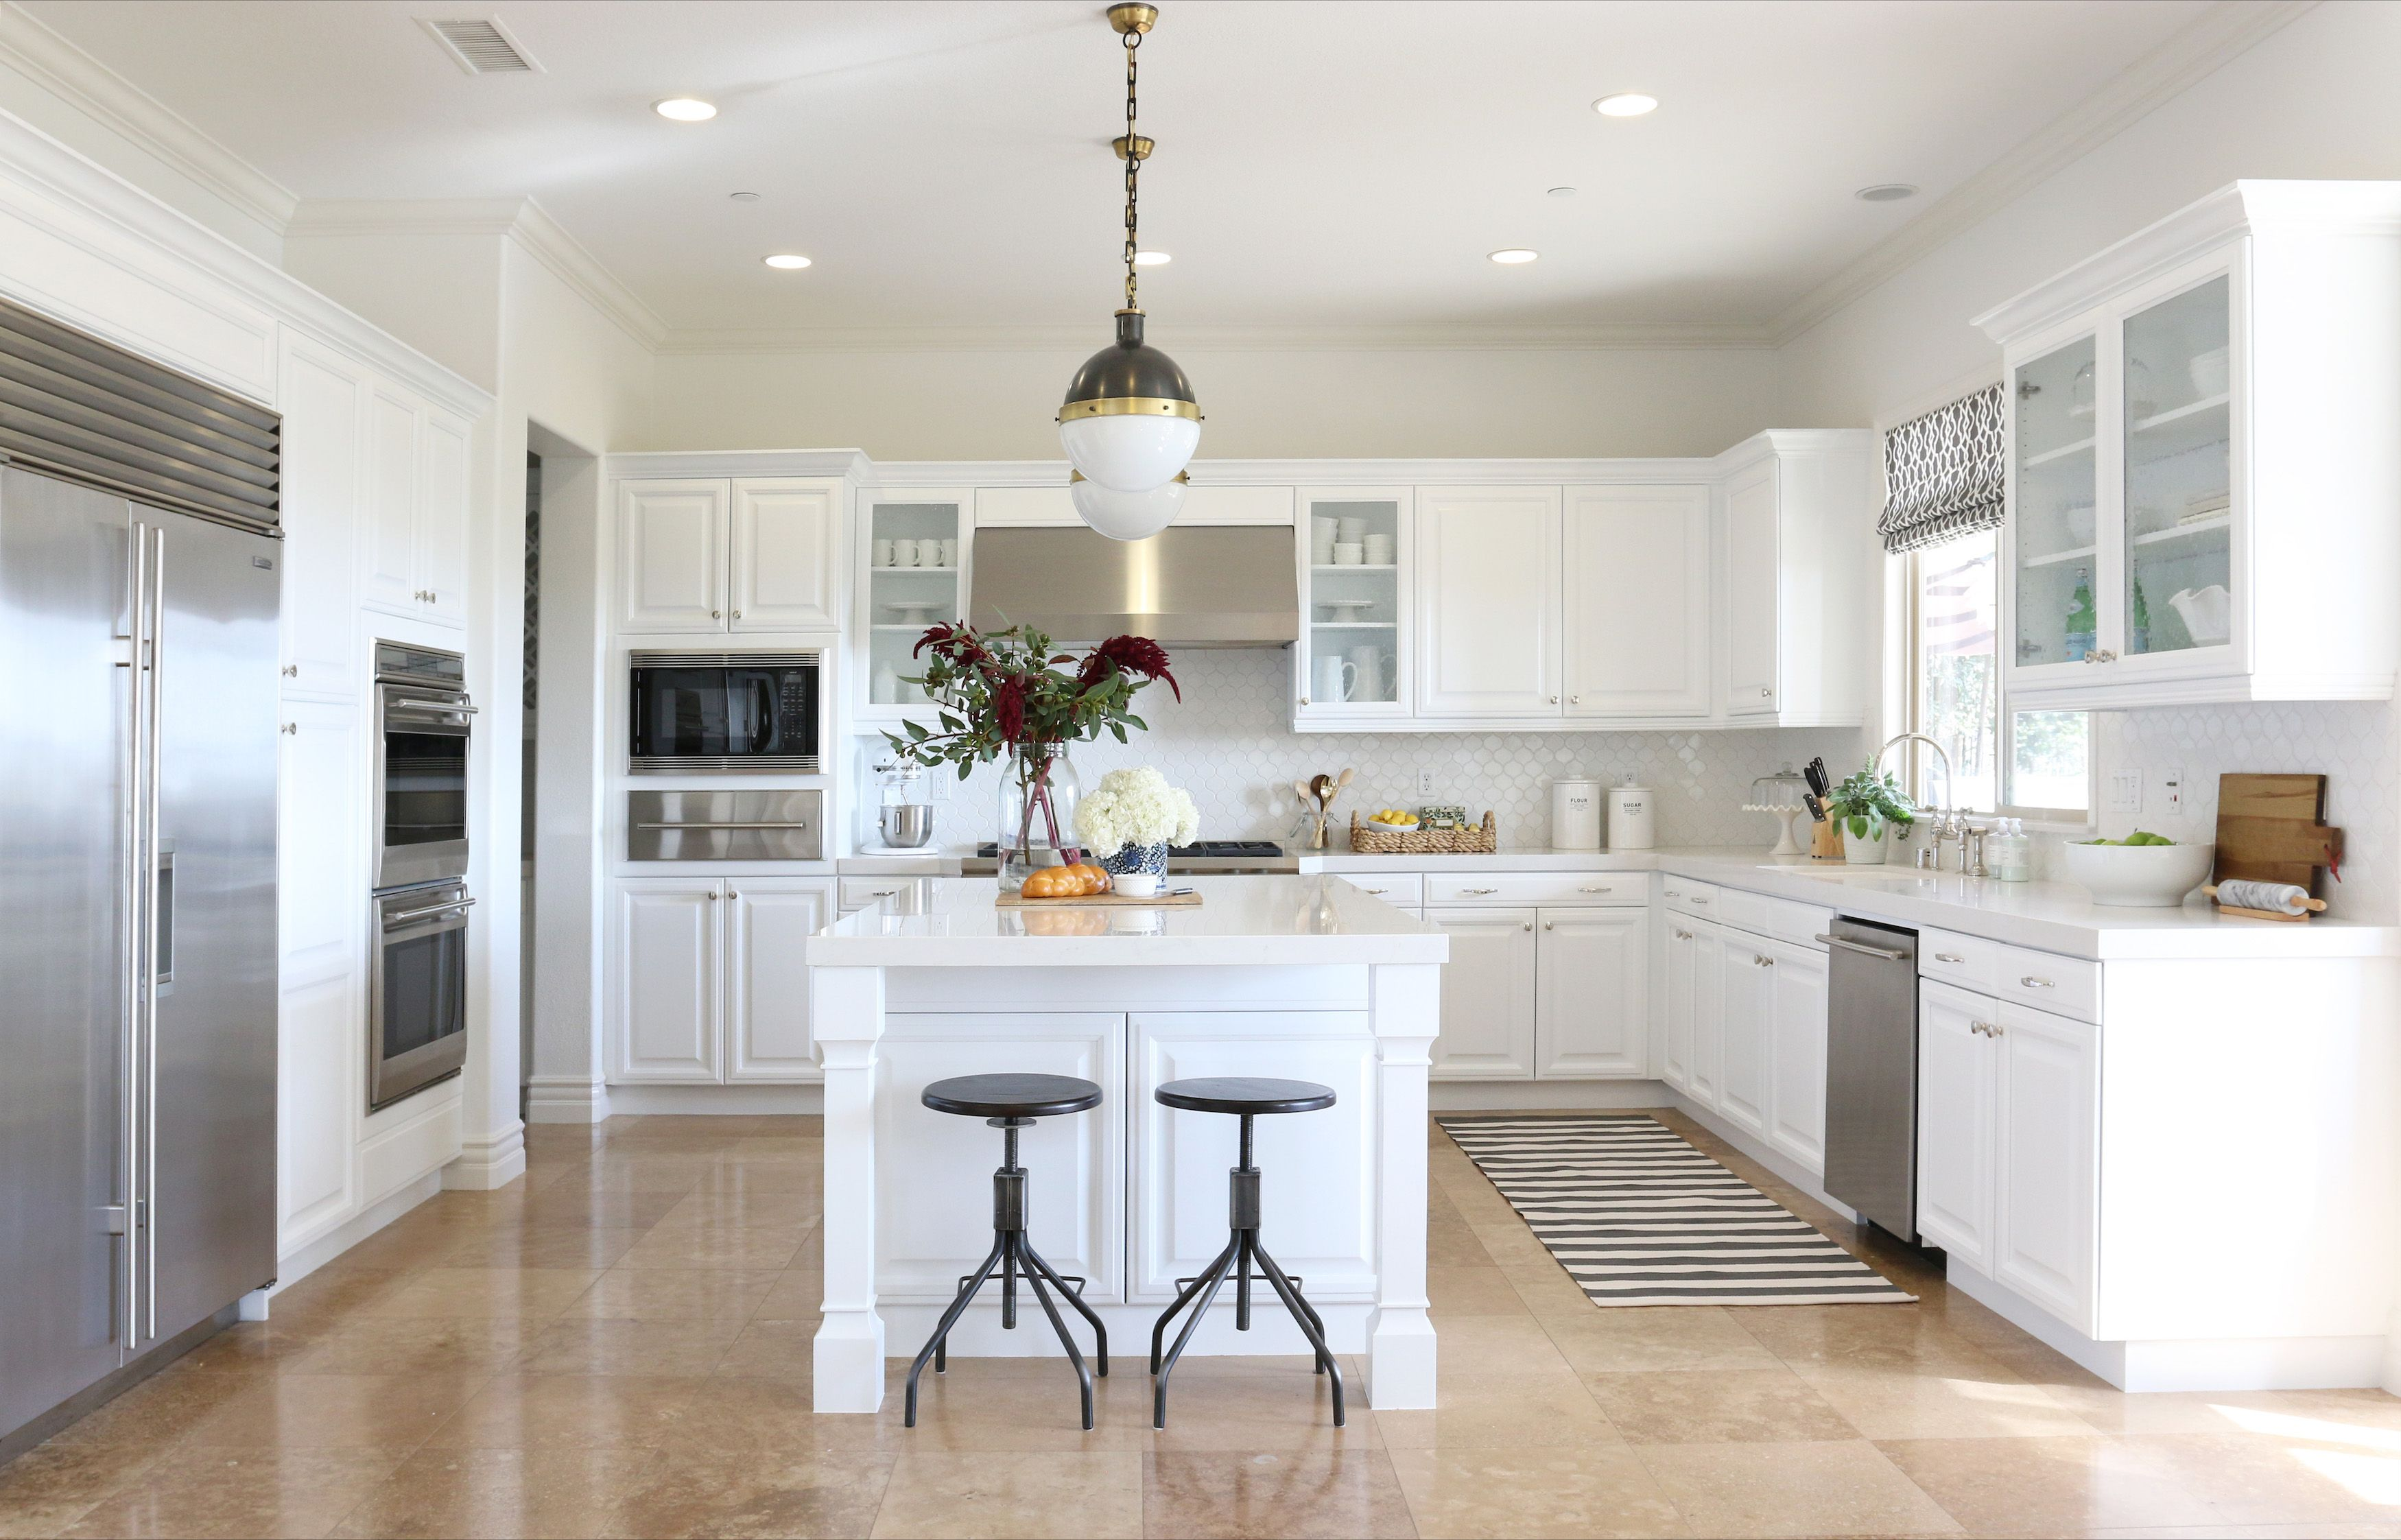 awesome Kitchen Design Ideas With White Cabinets #3: Elle Decor